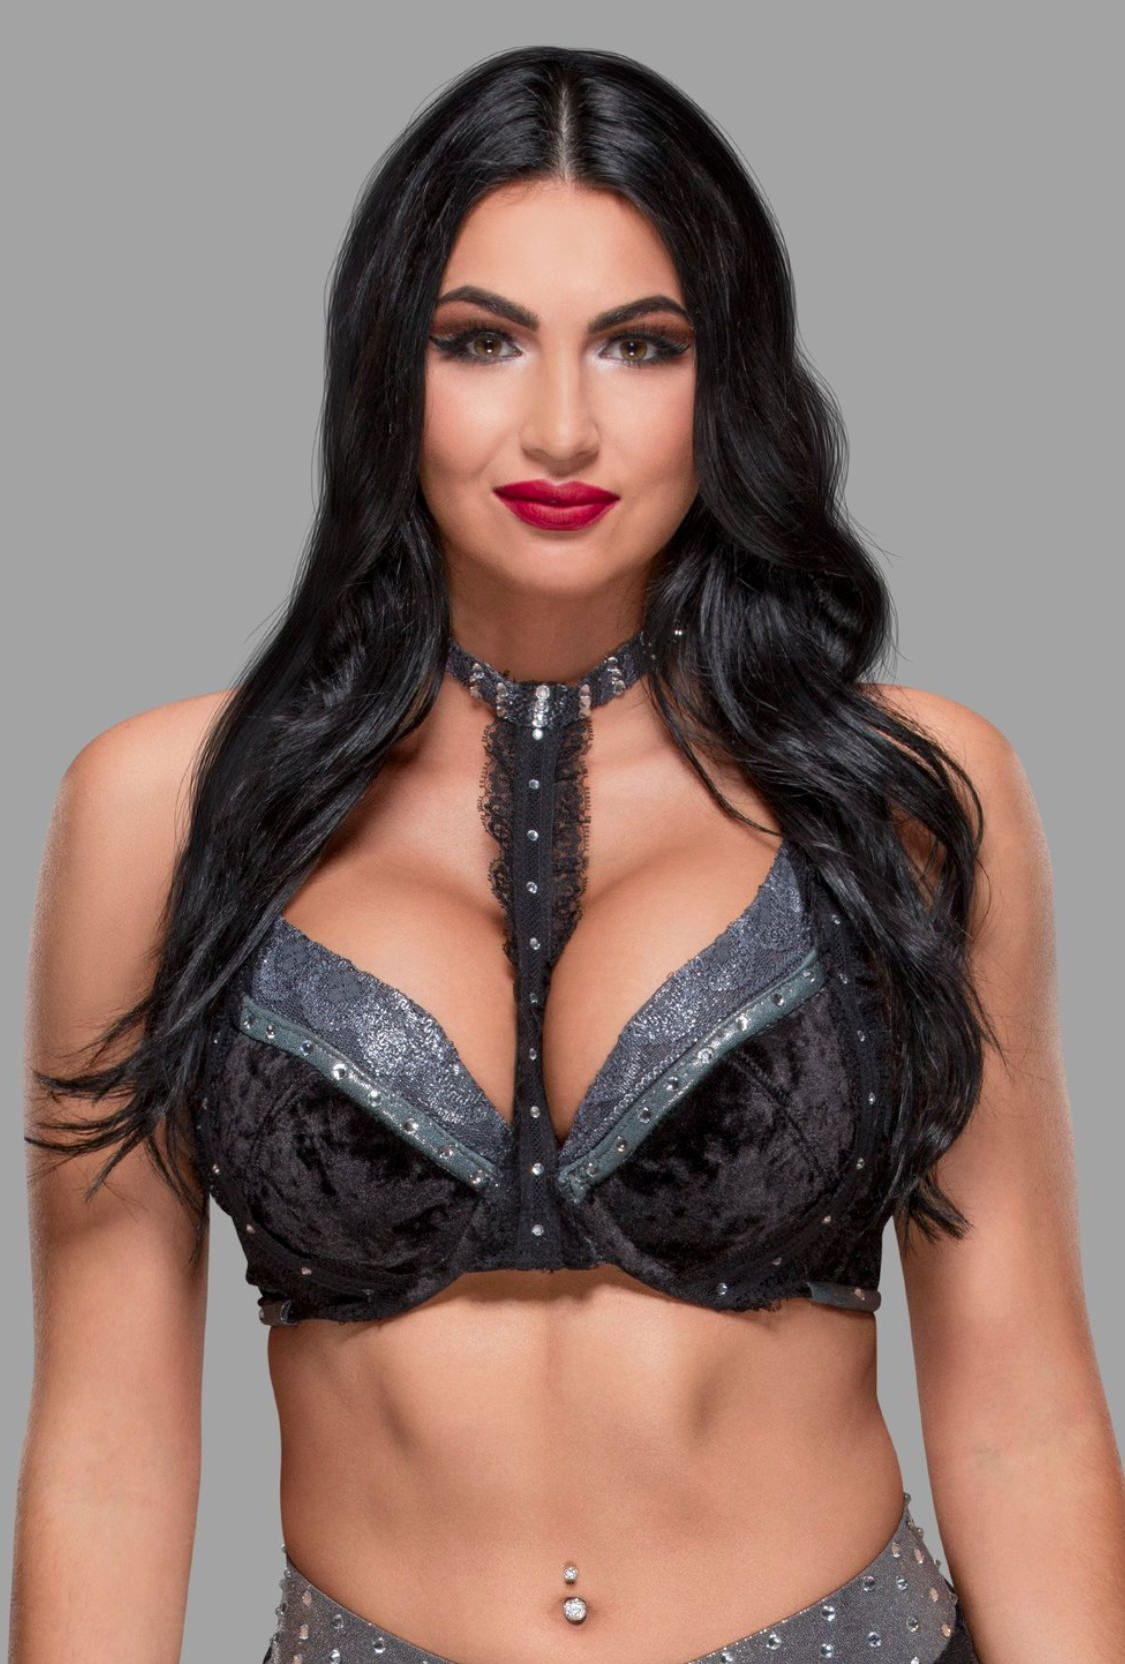 49 Hot Pictures Of Billie Kay Will Rock The Wwe Fan Inside You